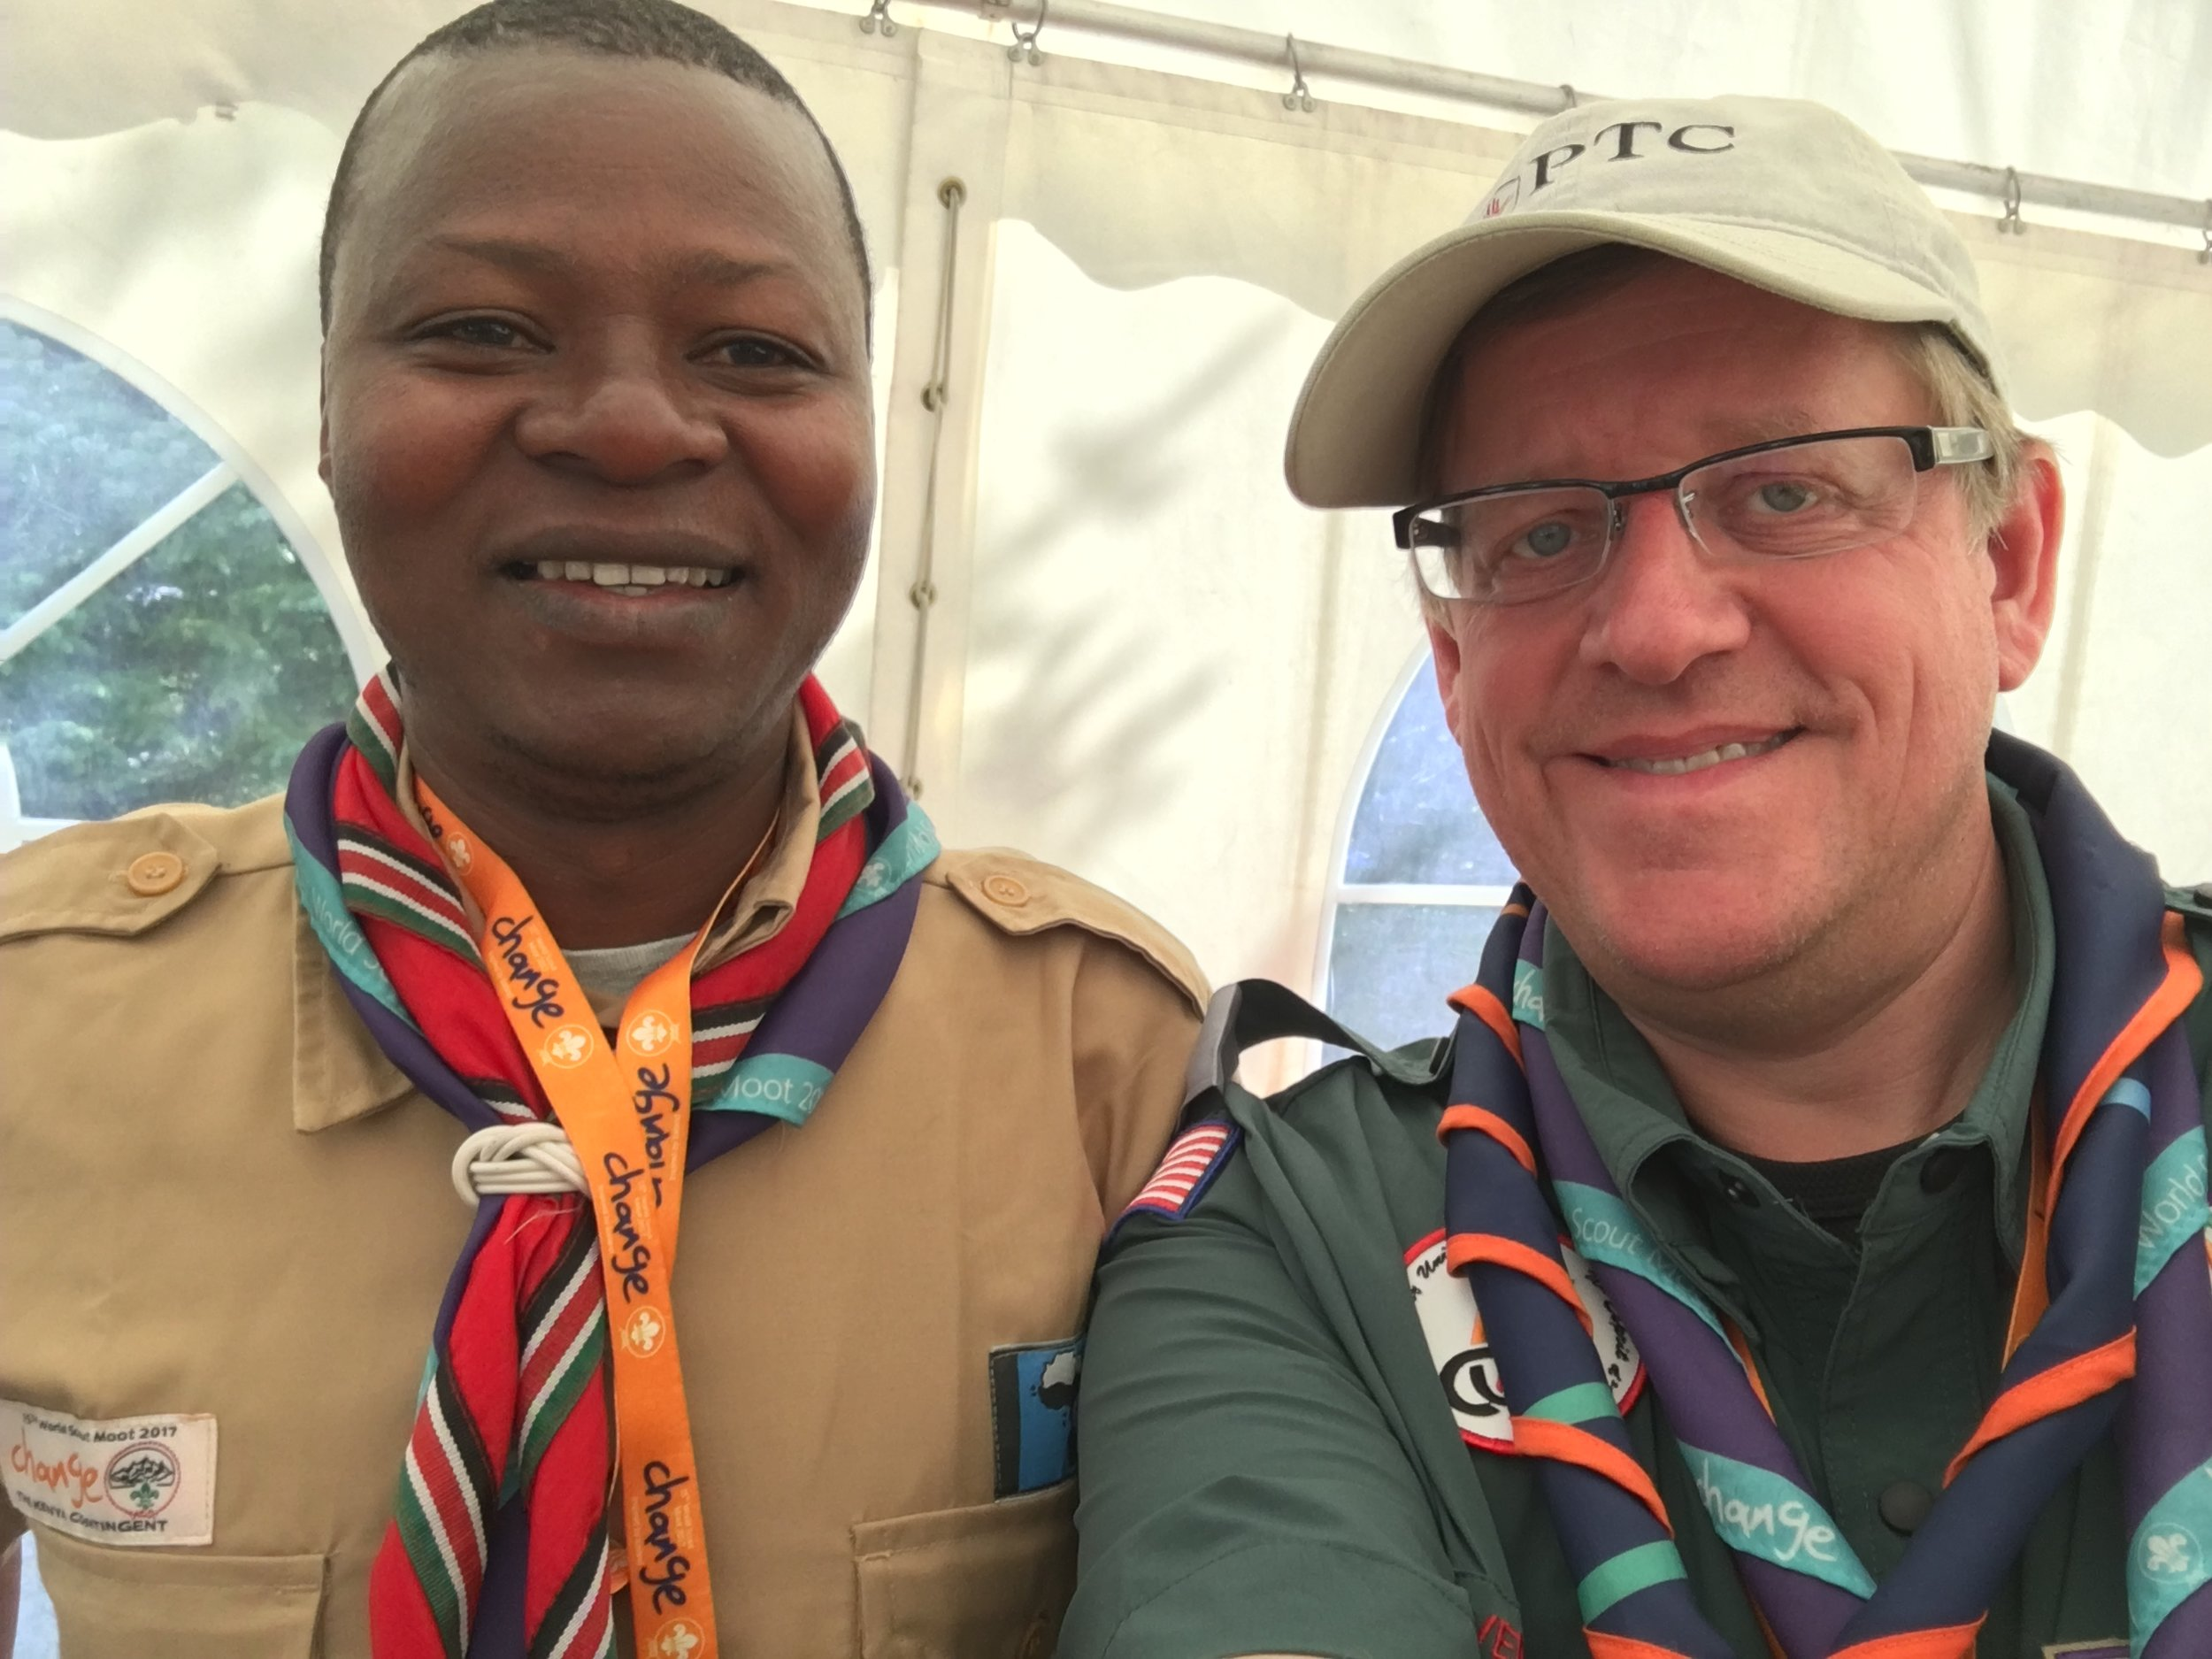 - Eagle ScoutsAs an Eagle Scout, Mark volunteers in the realm of International Scouting, promoting peace, sustainability and collaboration among the world's 40 million Scouts. He leads expeditions to give Scouts opportunities to build relationships with people who have different cultural, religious and life experiences than them